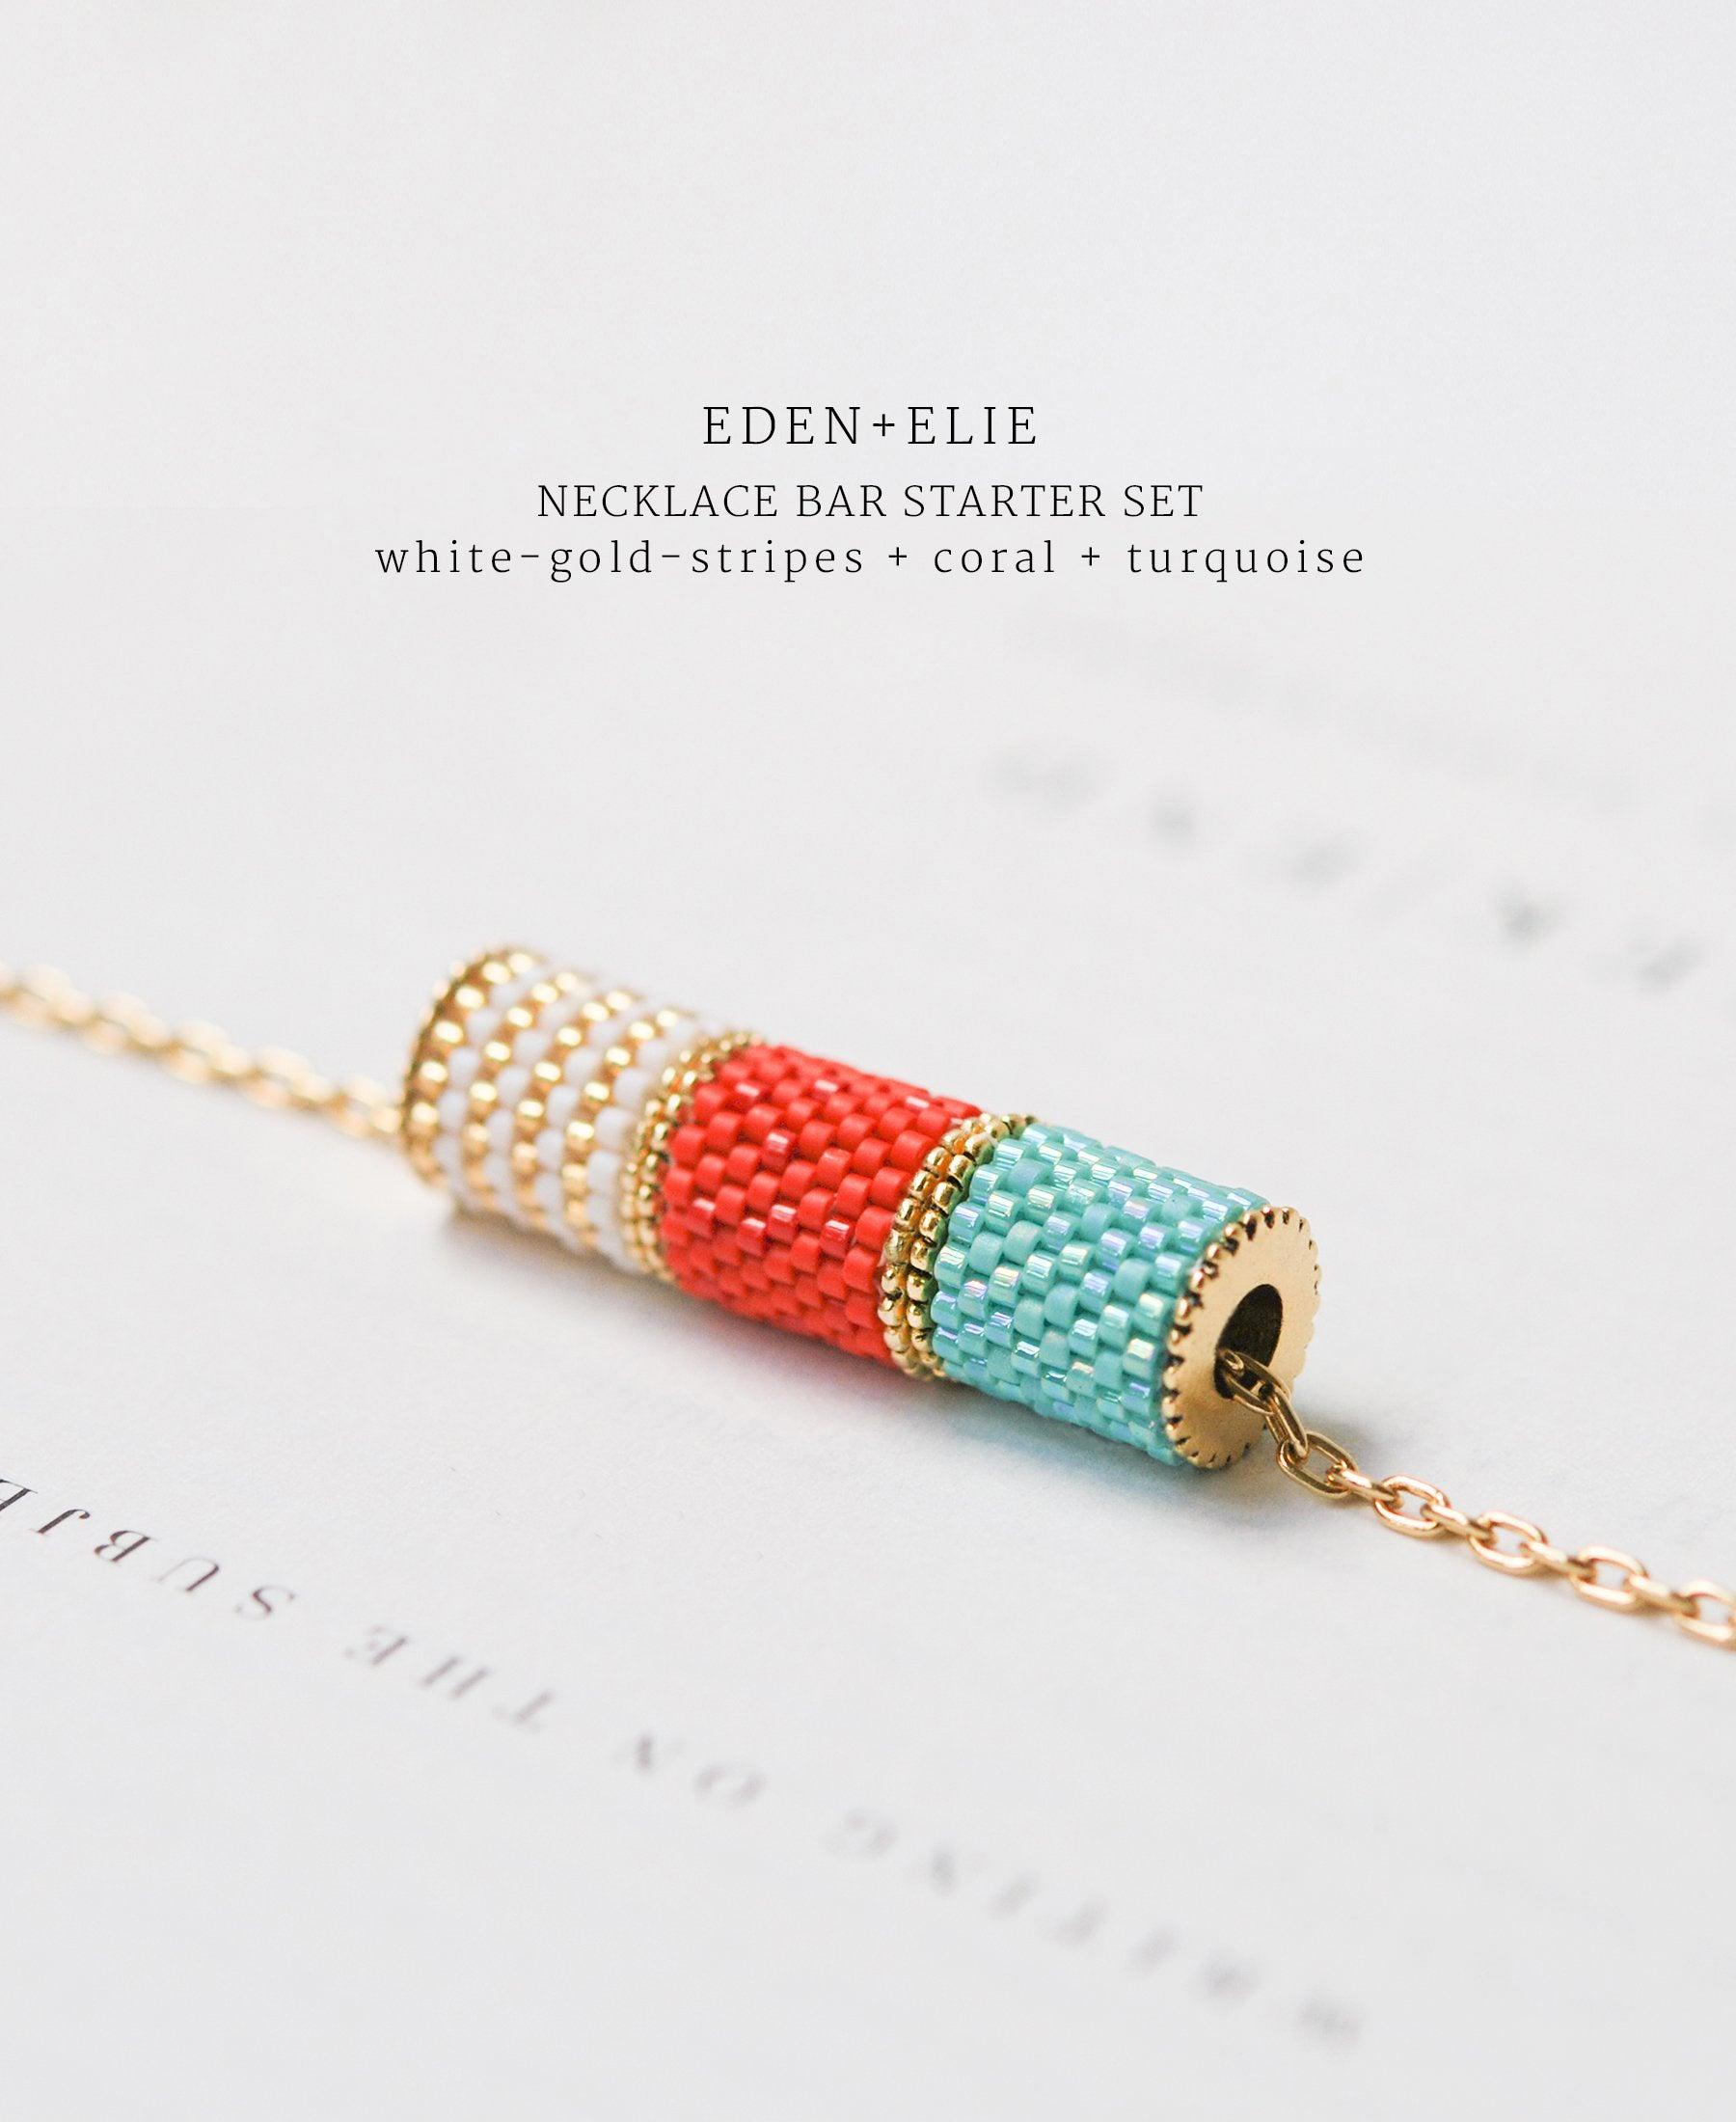 EDEN + ELIE Necklace Bar 3 bead starter set - turquoise + coral + white gold striped